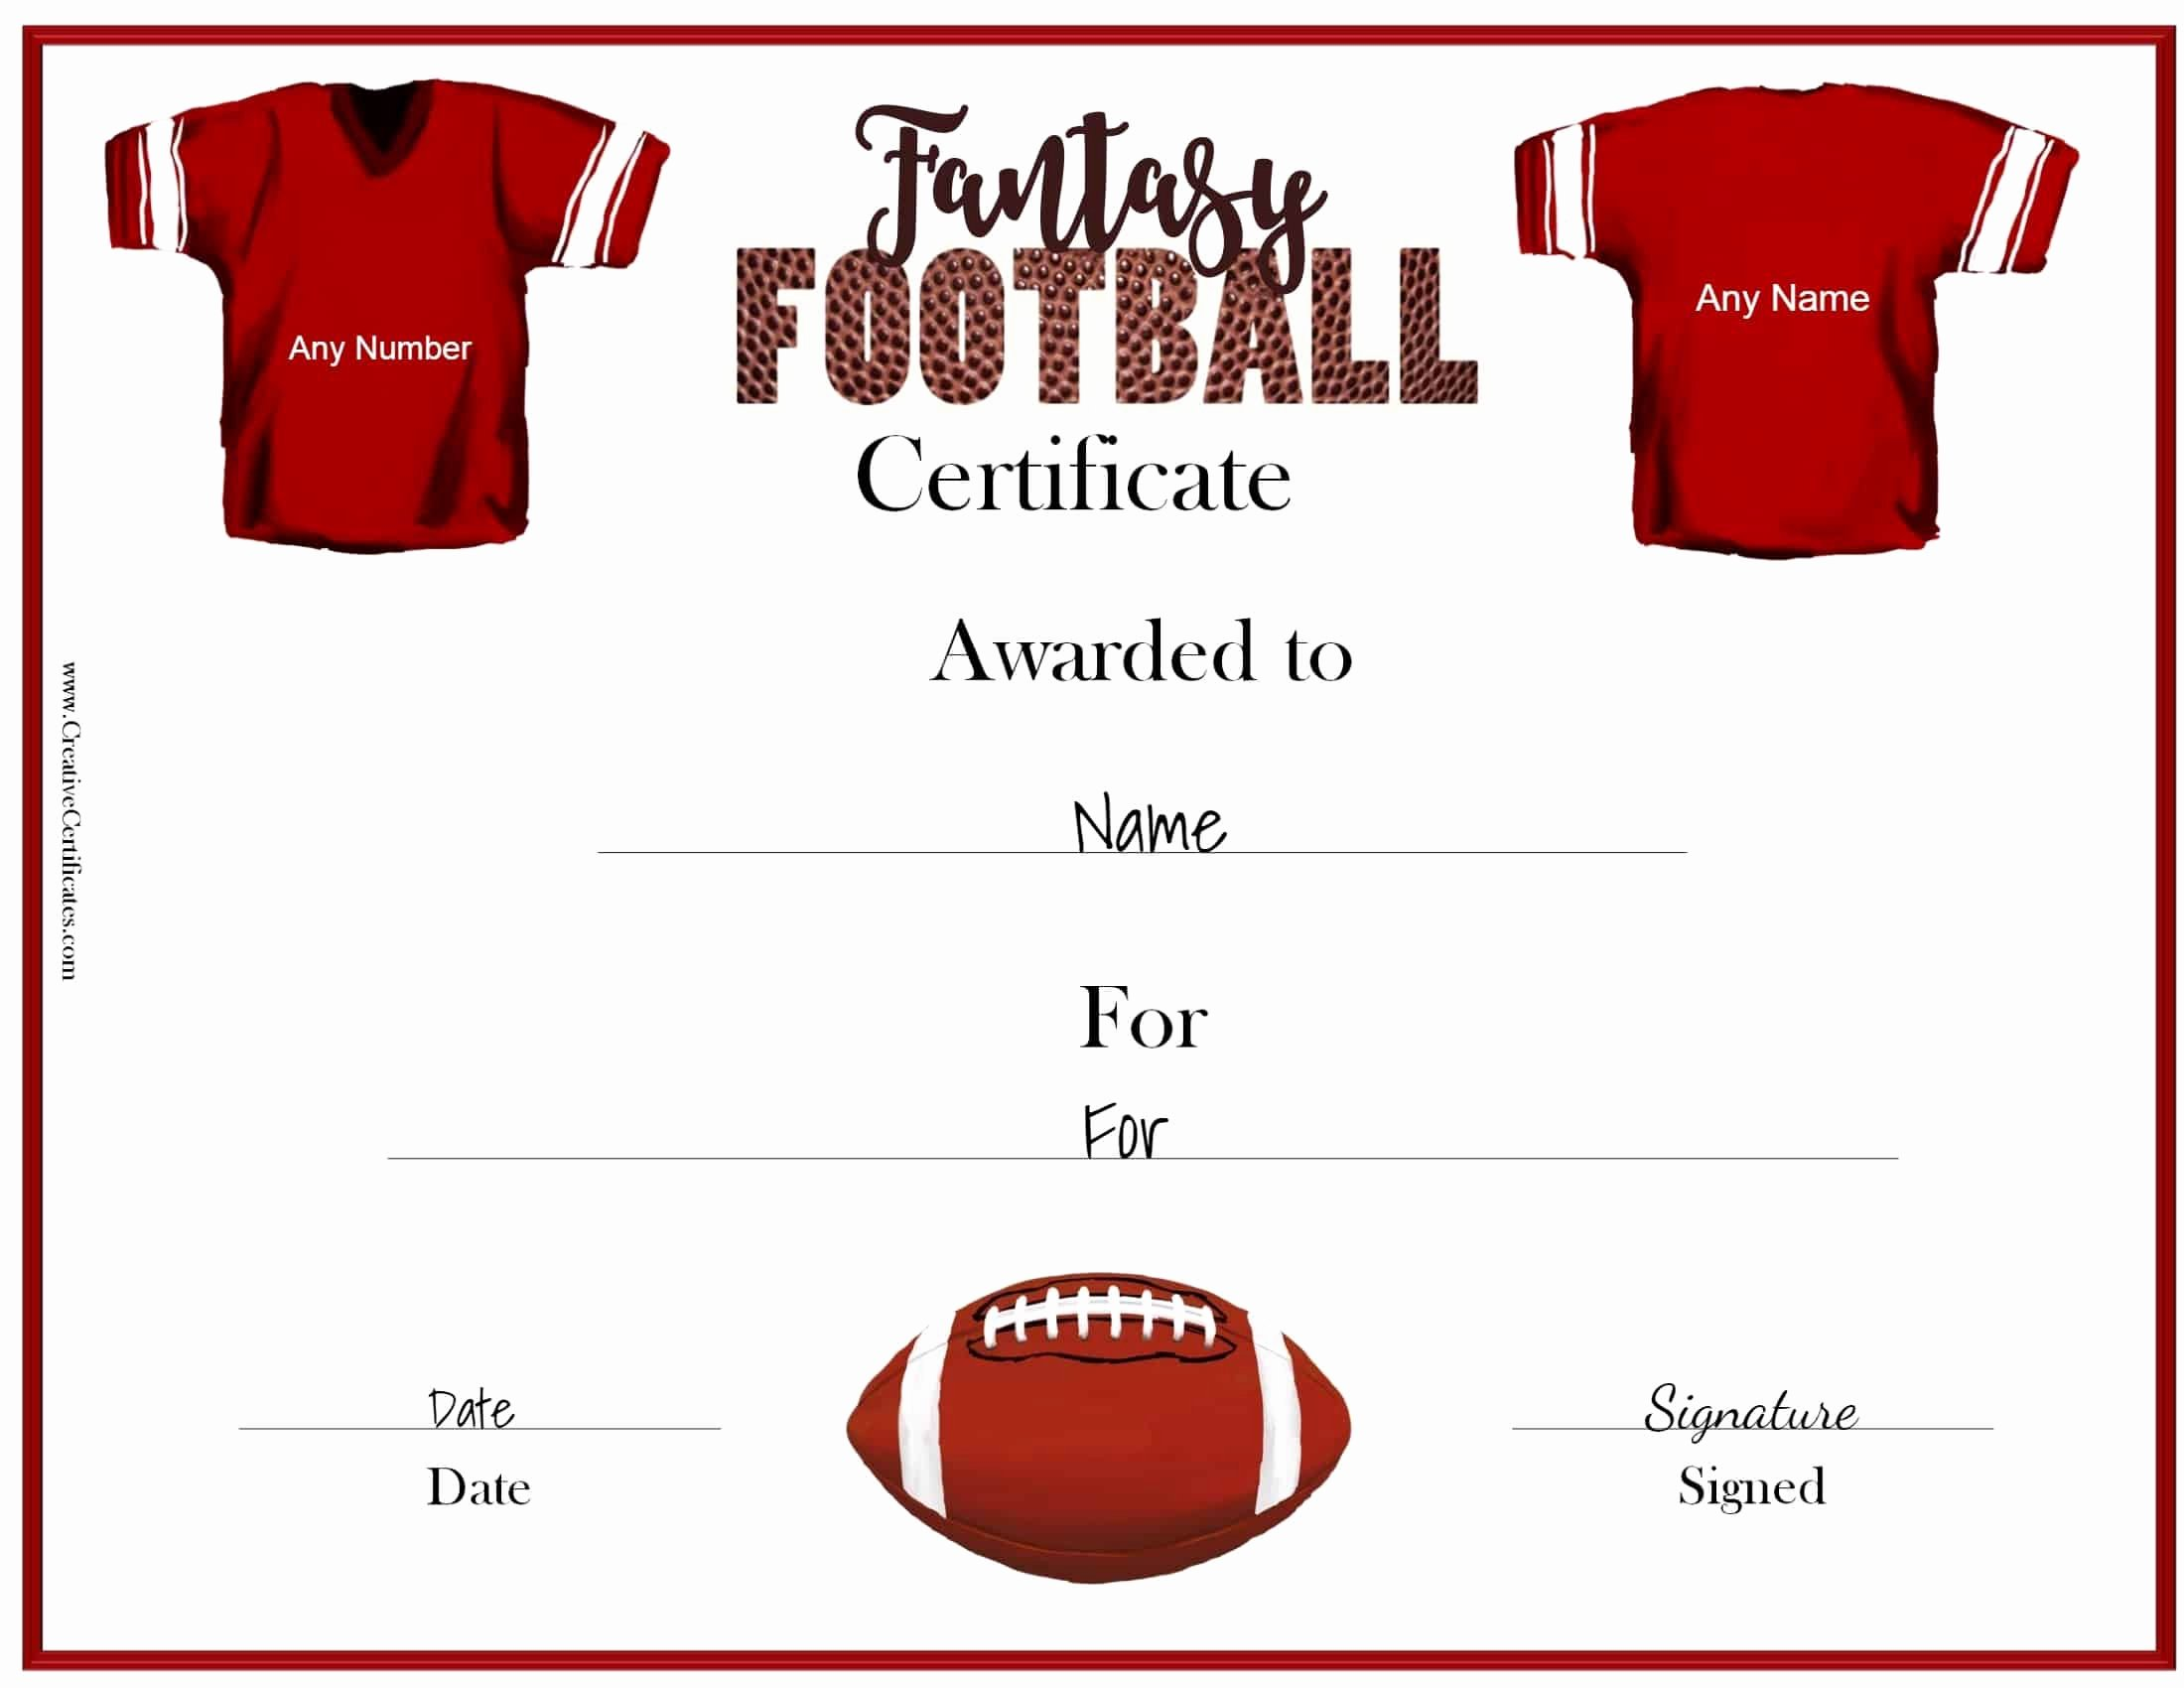 Fantasy Football Certificate Template Awesome Free Fantasy Football Awards